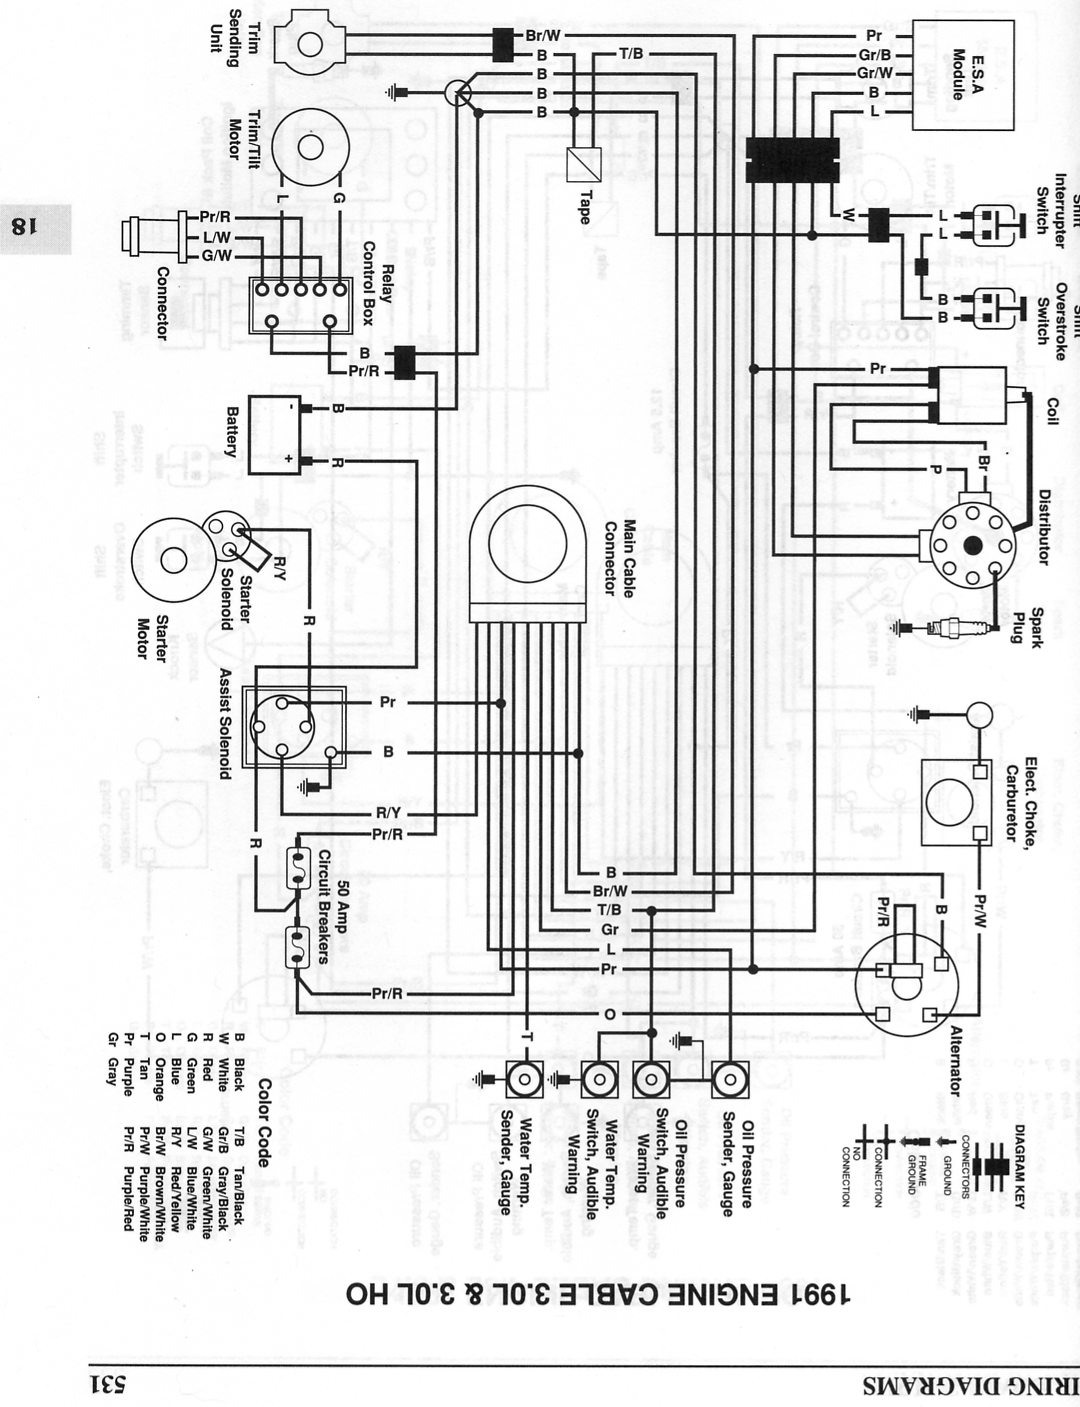 2011 01 14_162458_91_3.0_cobra omc cobra 5 0 wiring diagram schematics and wiring diagrams,Ground Wire Diagram Omc Co